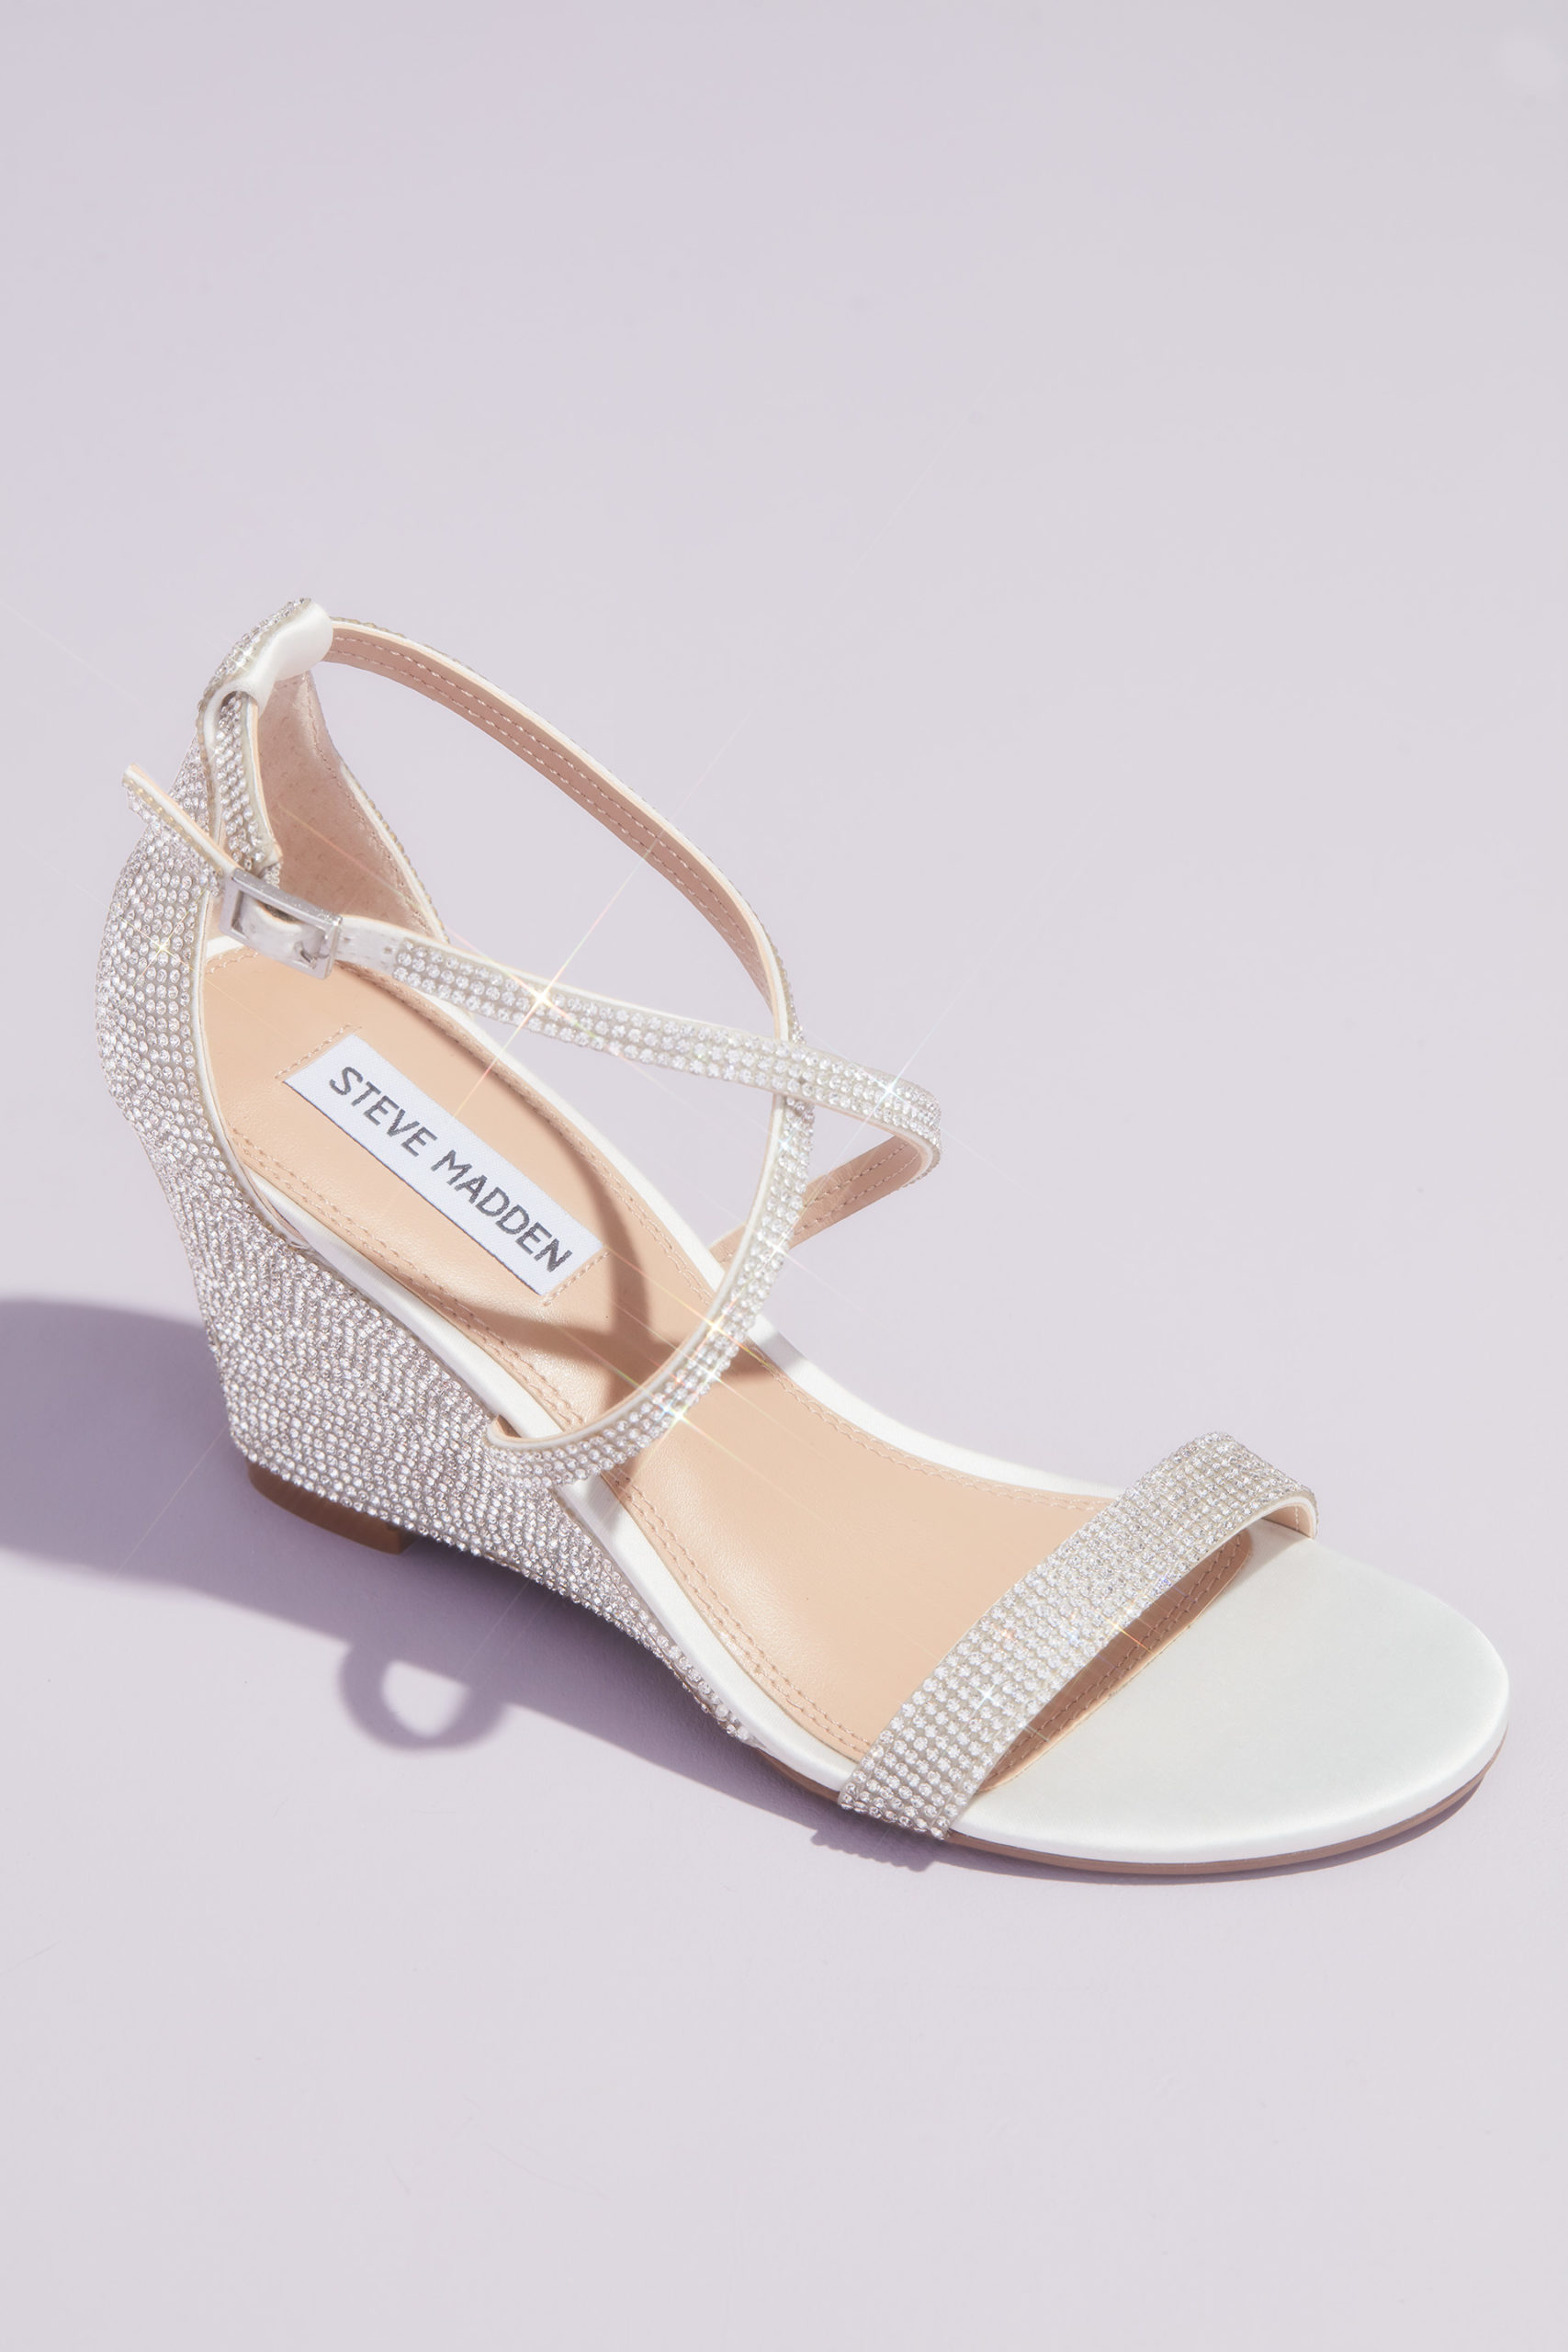 sparkly wedges for your quinceañera